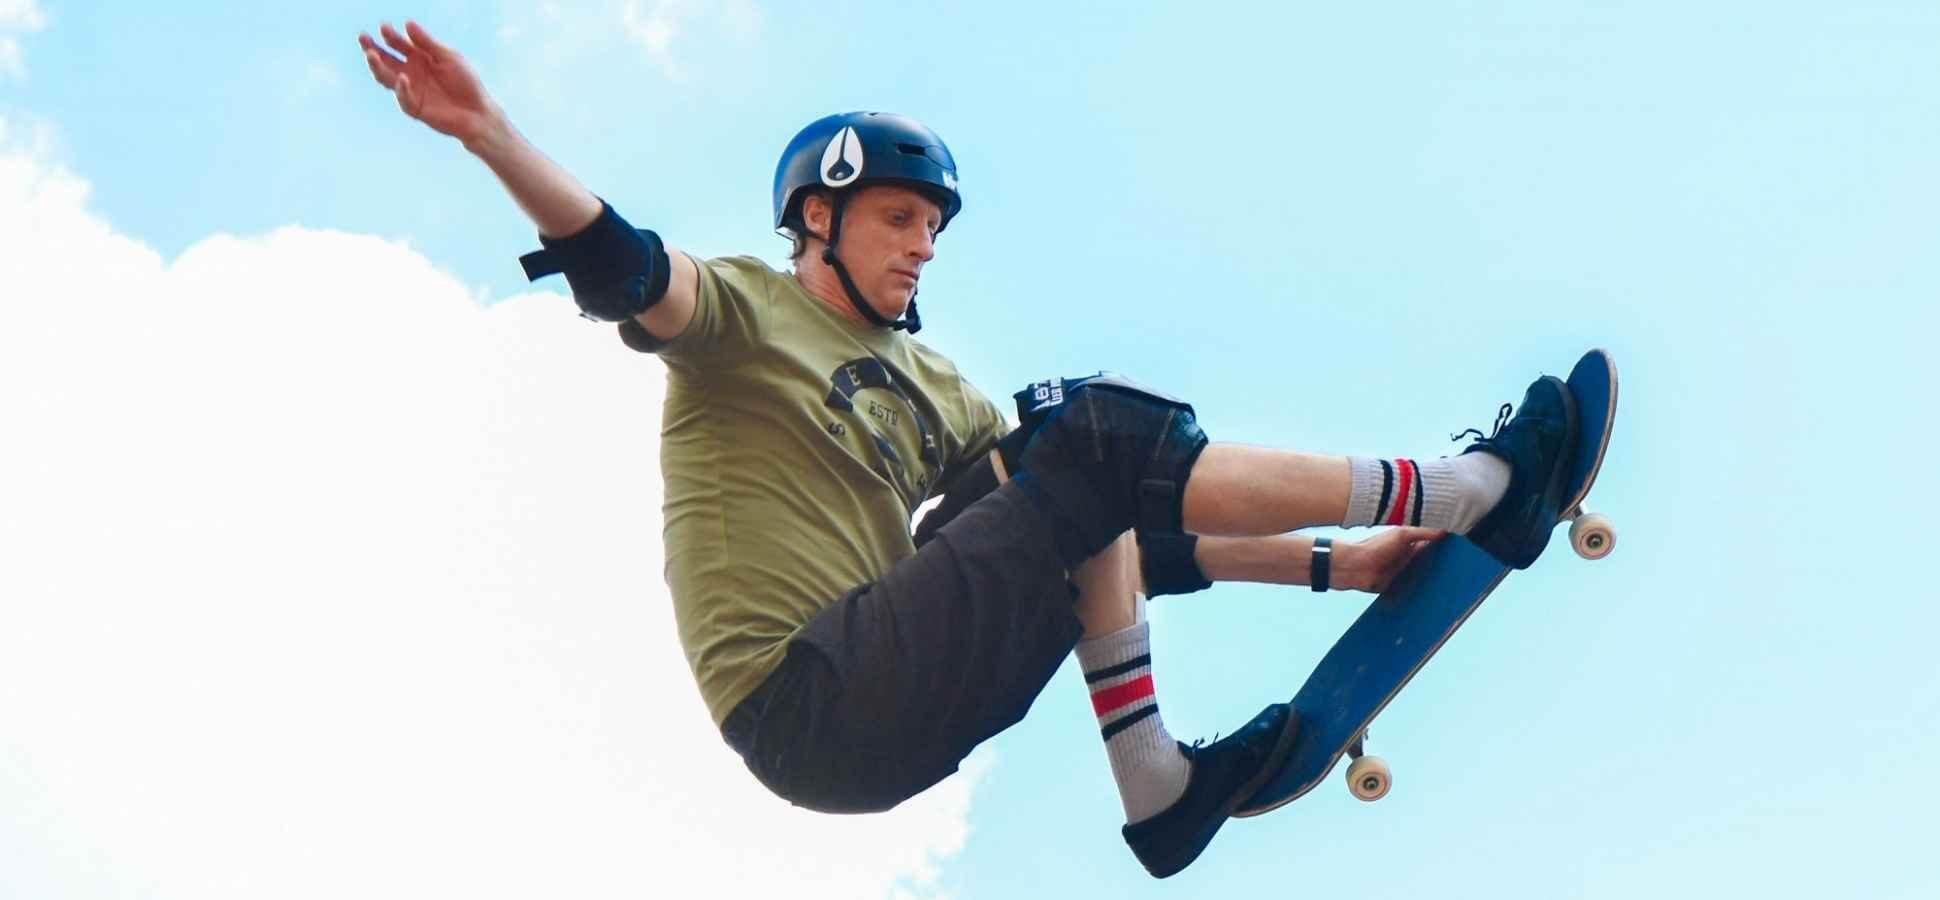 20 years later: Tony Hawk reveals motion capture clip from original Pro Skater game